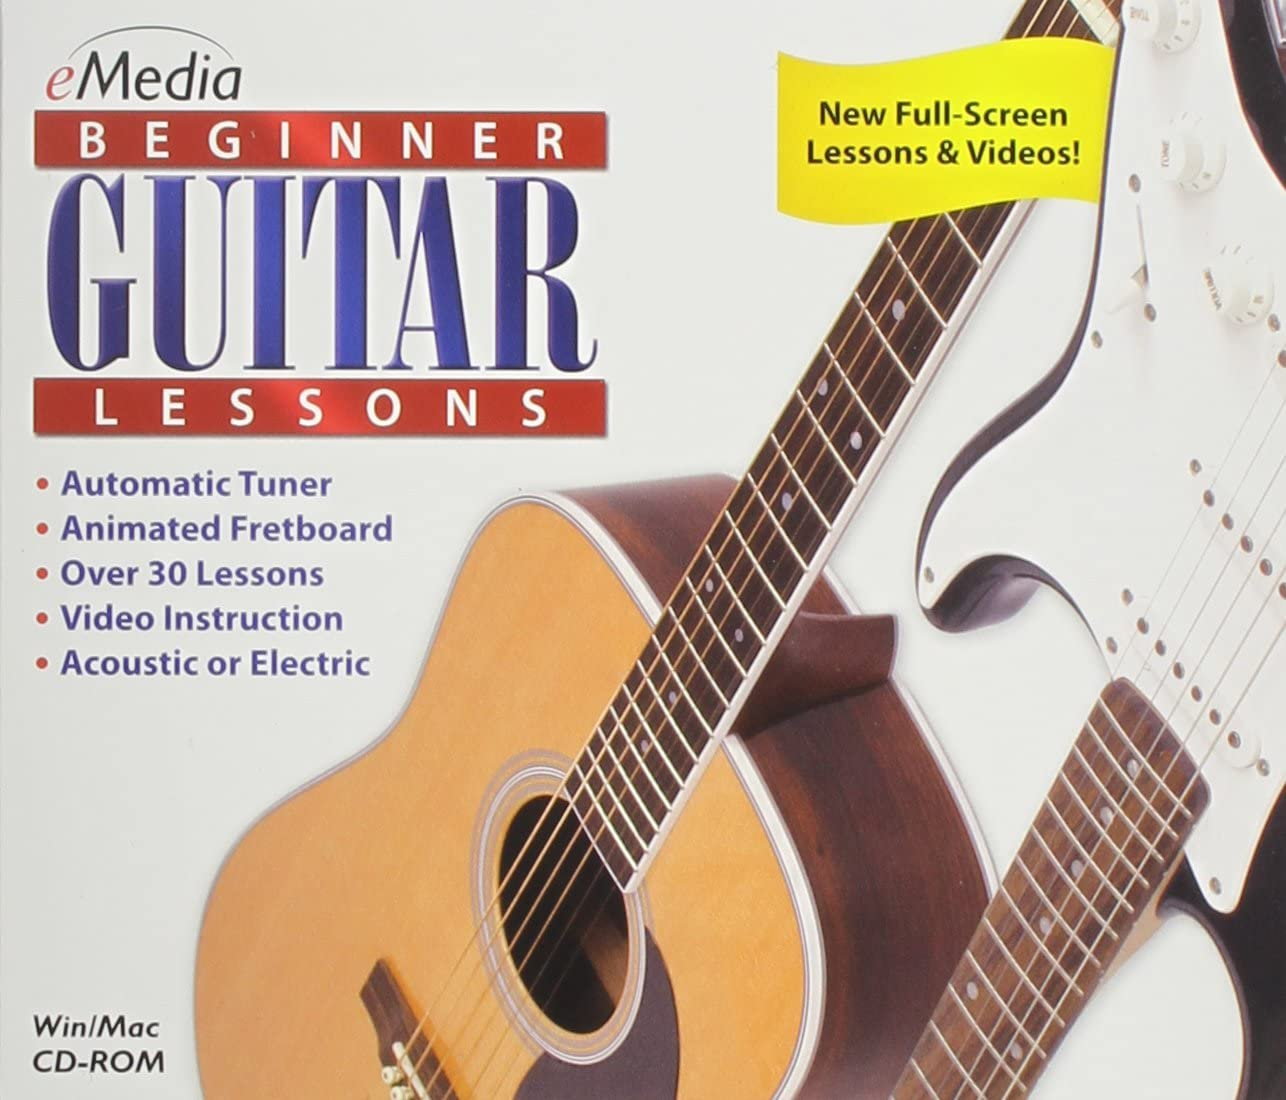 Beginner Guitar Lessons 71an8qsA75L